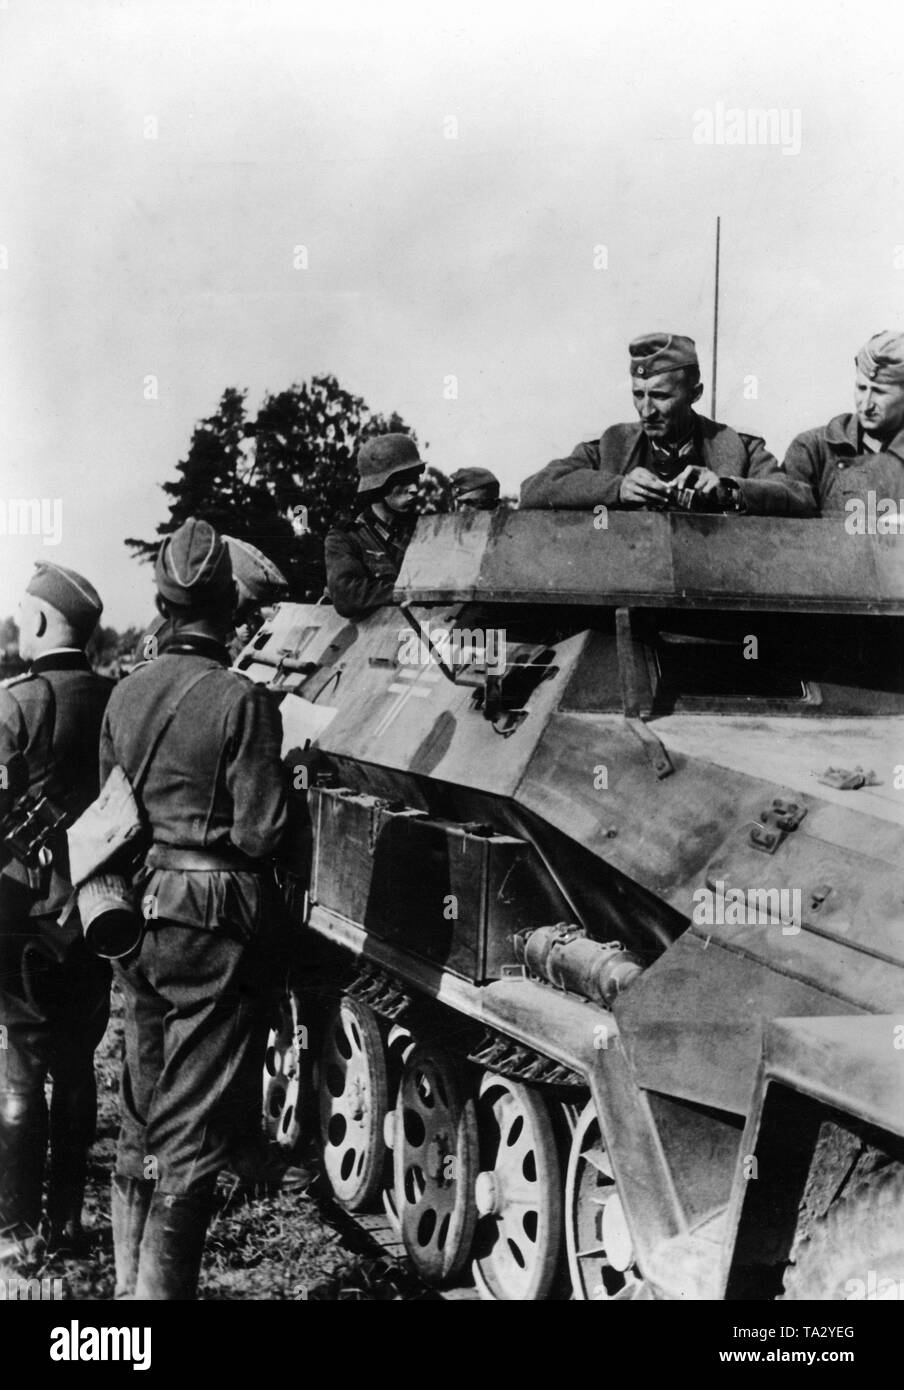 Mobile regimental staff during the tank battle at Tauroggen in today's Lithuania. Officers in conversation at an armored personnel carrier Sdkfz. 251. Shortly after the beginning of the German-Soviet War and the advance of the Army Group North here took place the tank battle at Tauroggen-Schaulen, where the XXXXI mot. Armeekorps fought on the German side. Photo: war correspondent Tannenberg. Stock Photo